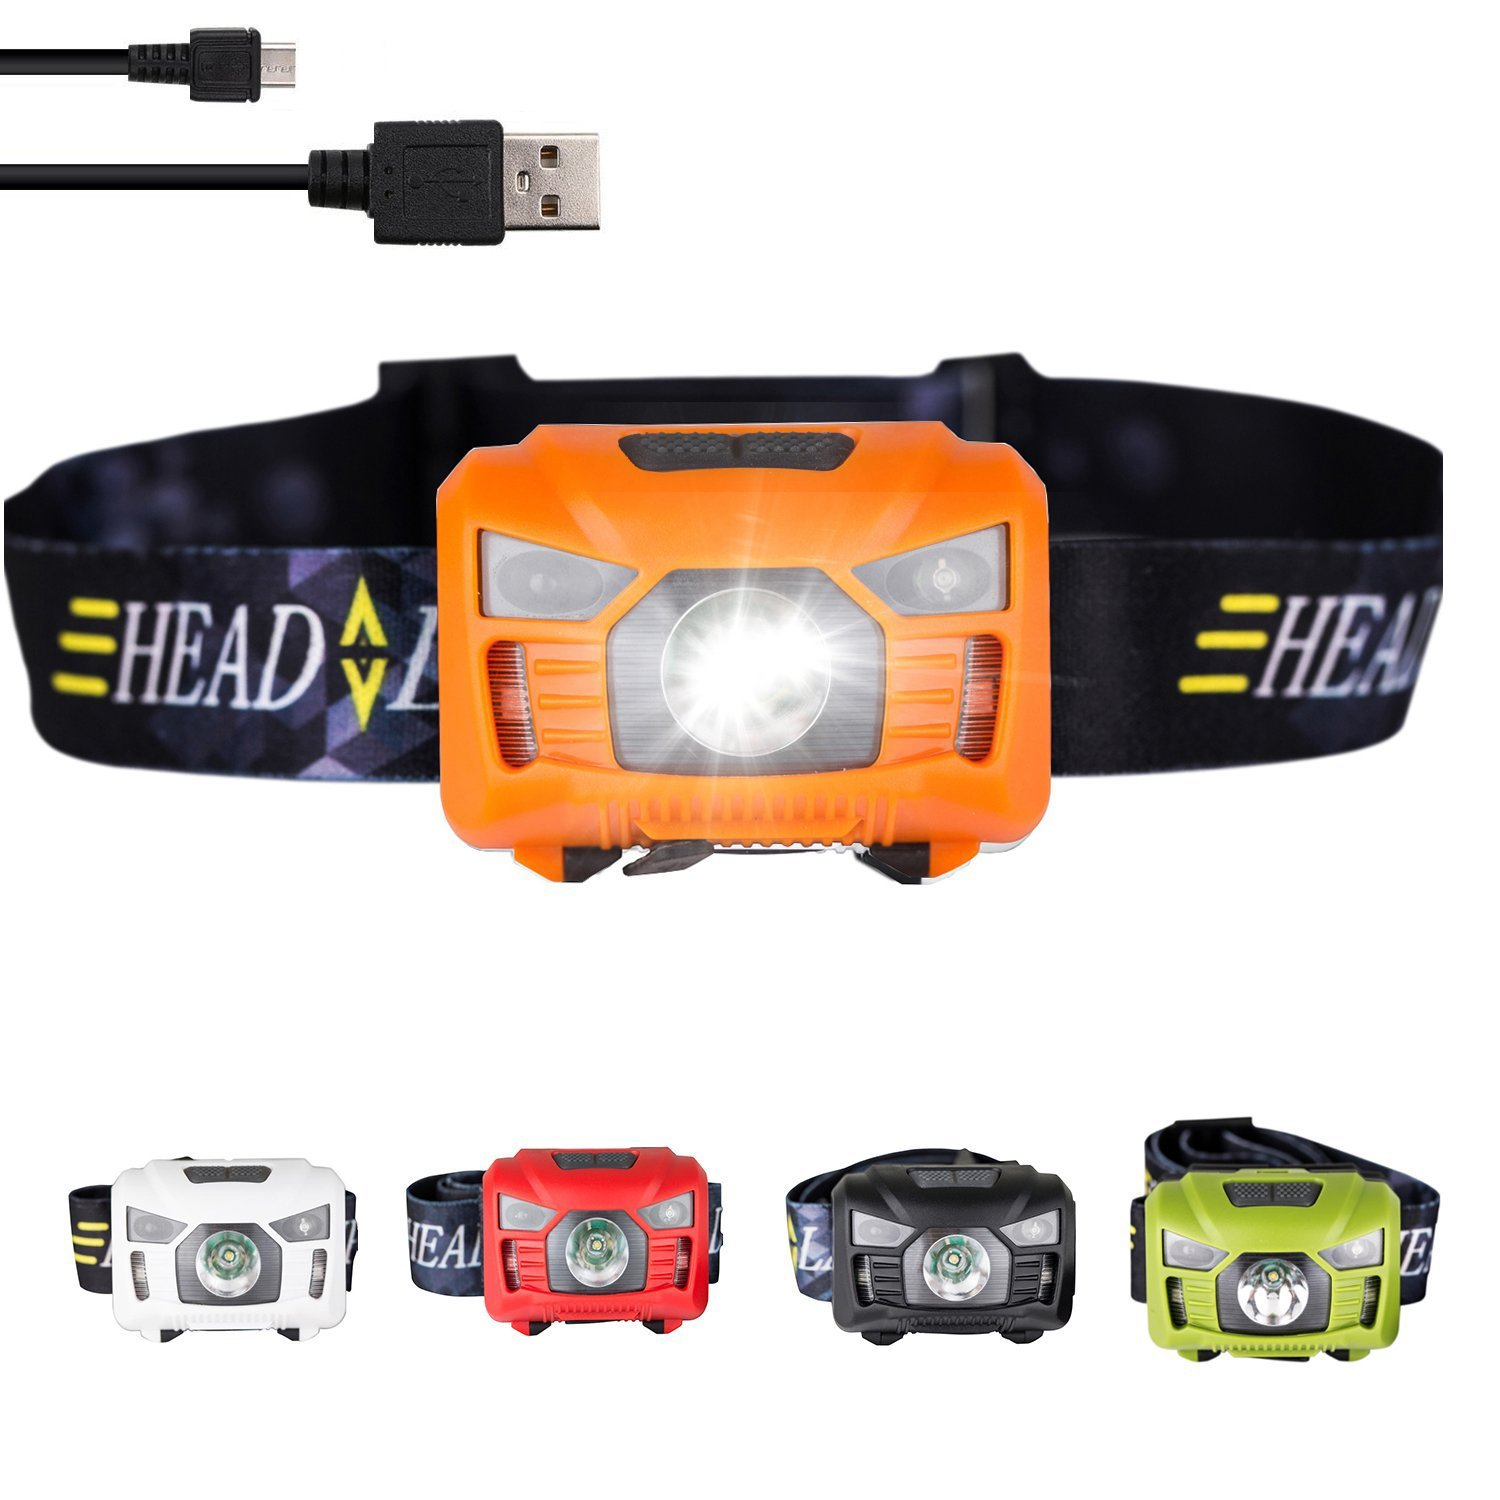 three trees Sensor Brightest LED -With Red Light Rechargeable Headlamp Flashlight for Kids Men and Women,Waterproof Perfect for Running, Walking,Reading,Camping Adjustable in 200 Lumens (orange)